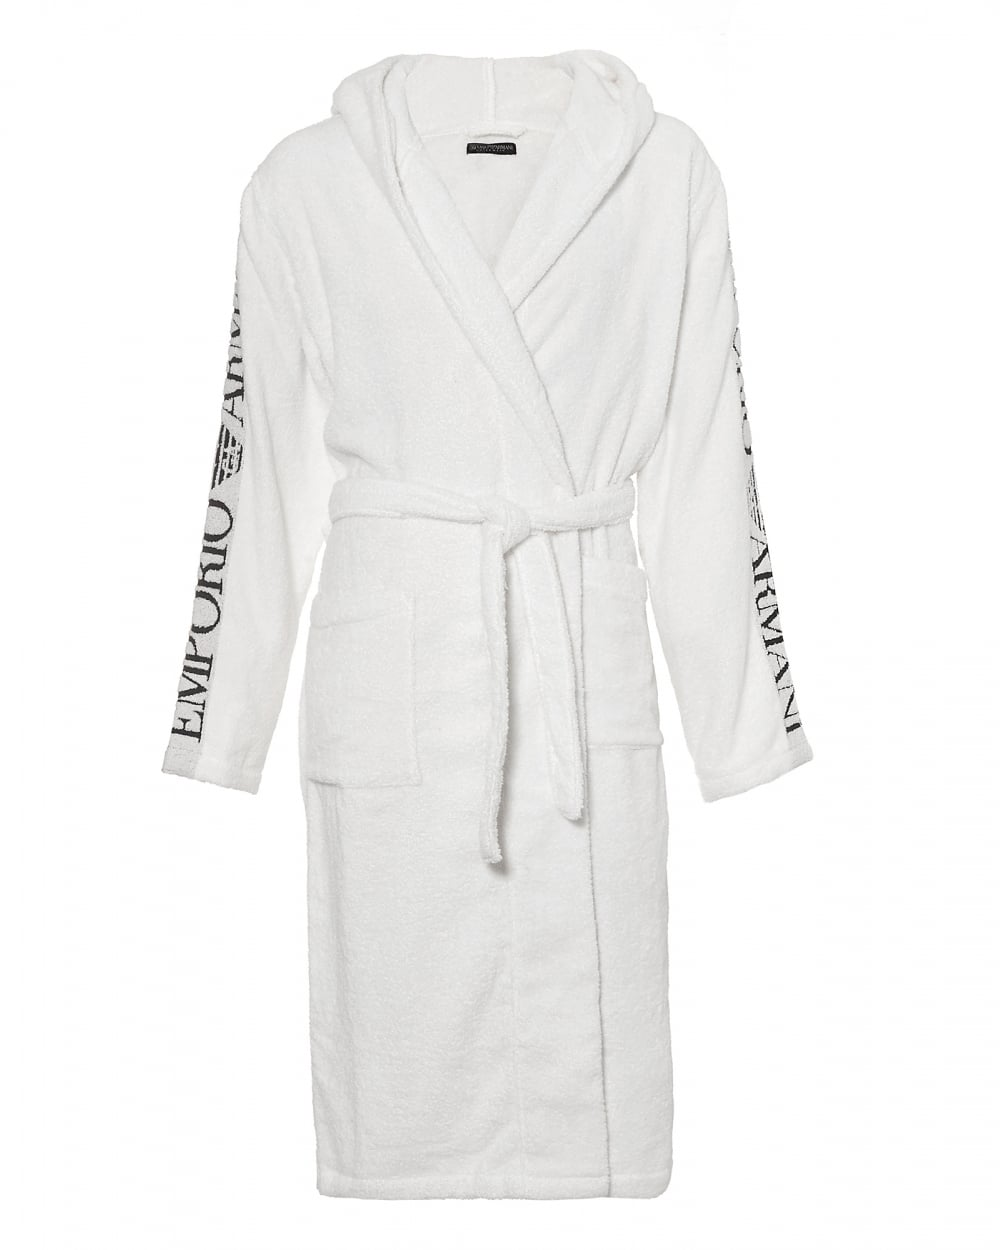 Emporio Armani Mens Hooded Robe, Logo Sleeve White Dressing Gown